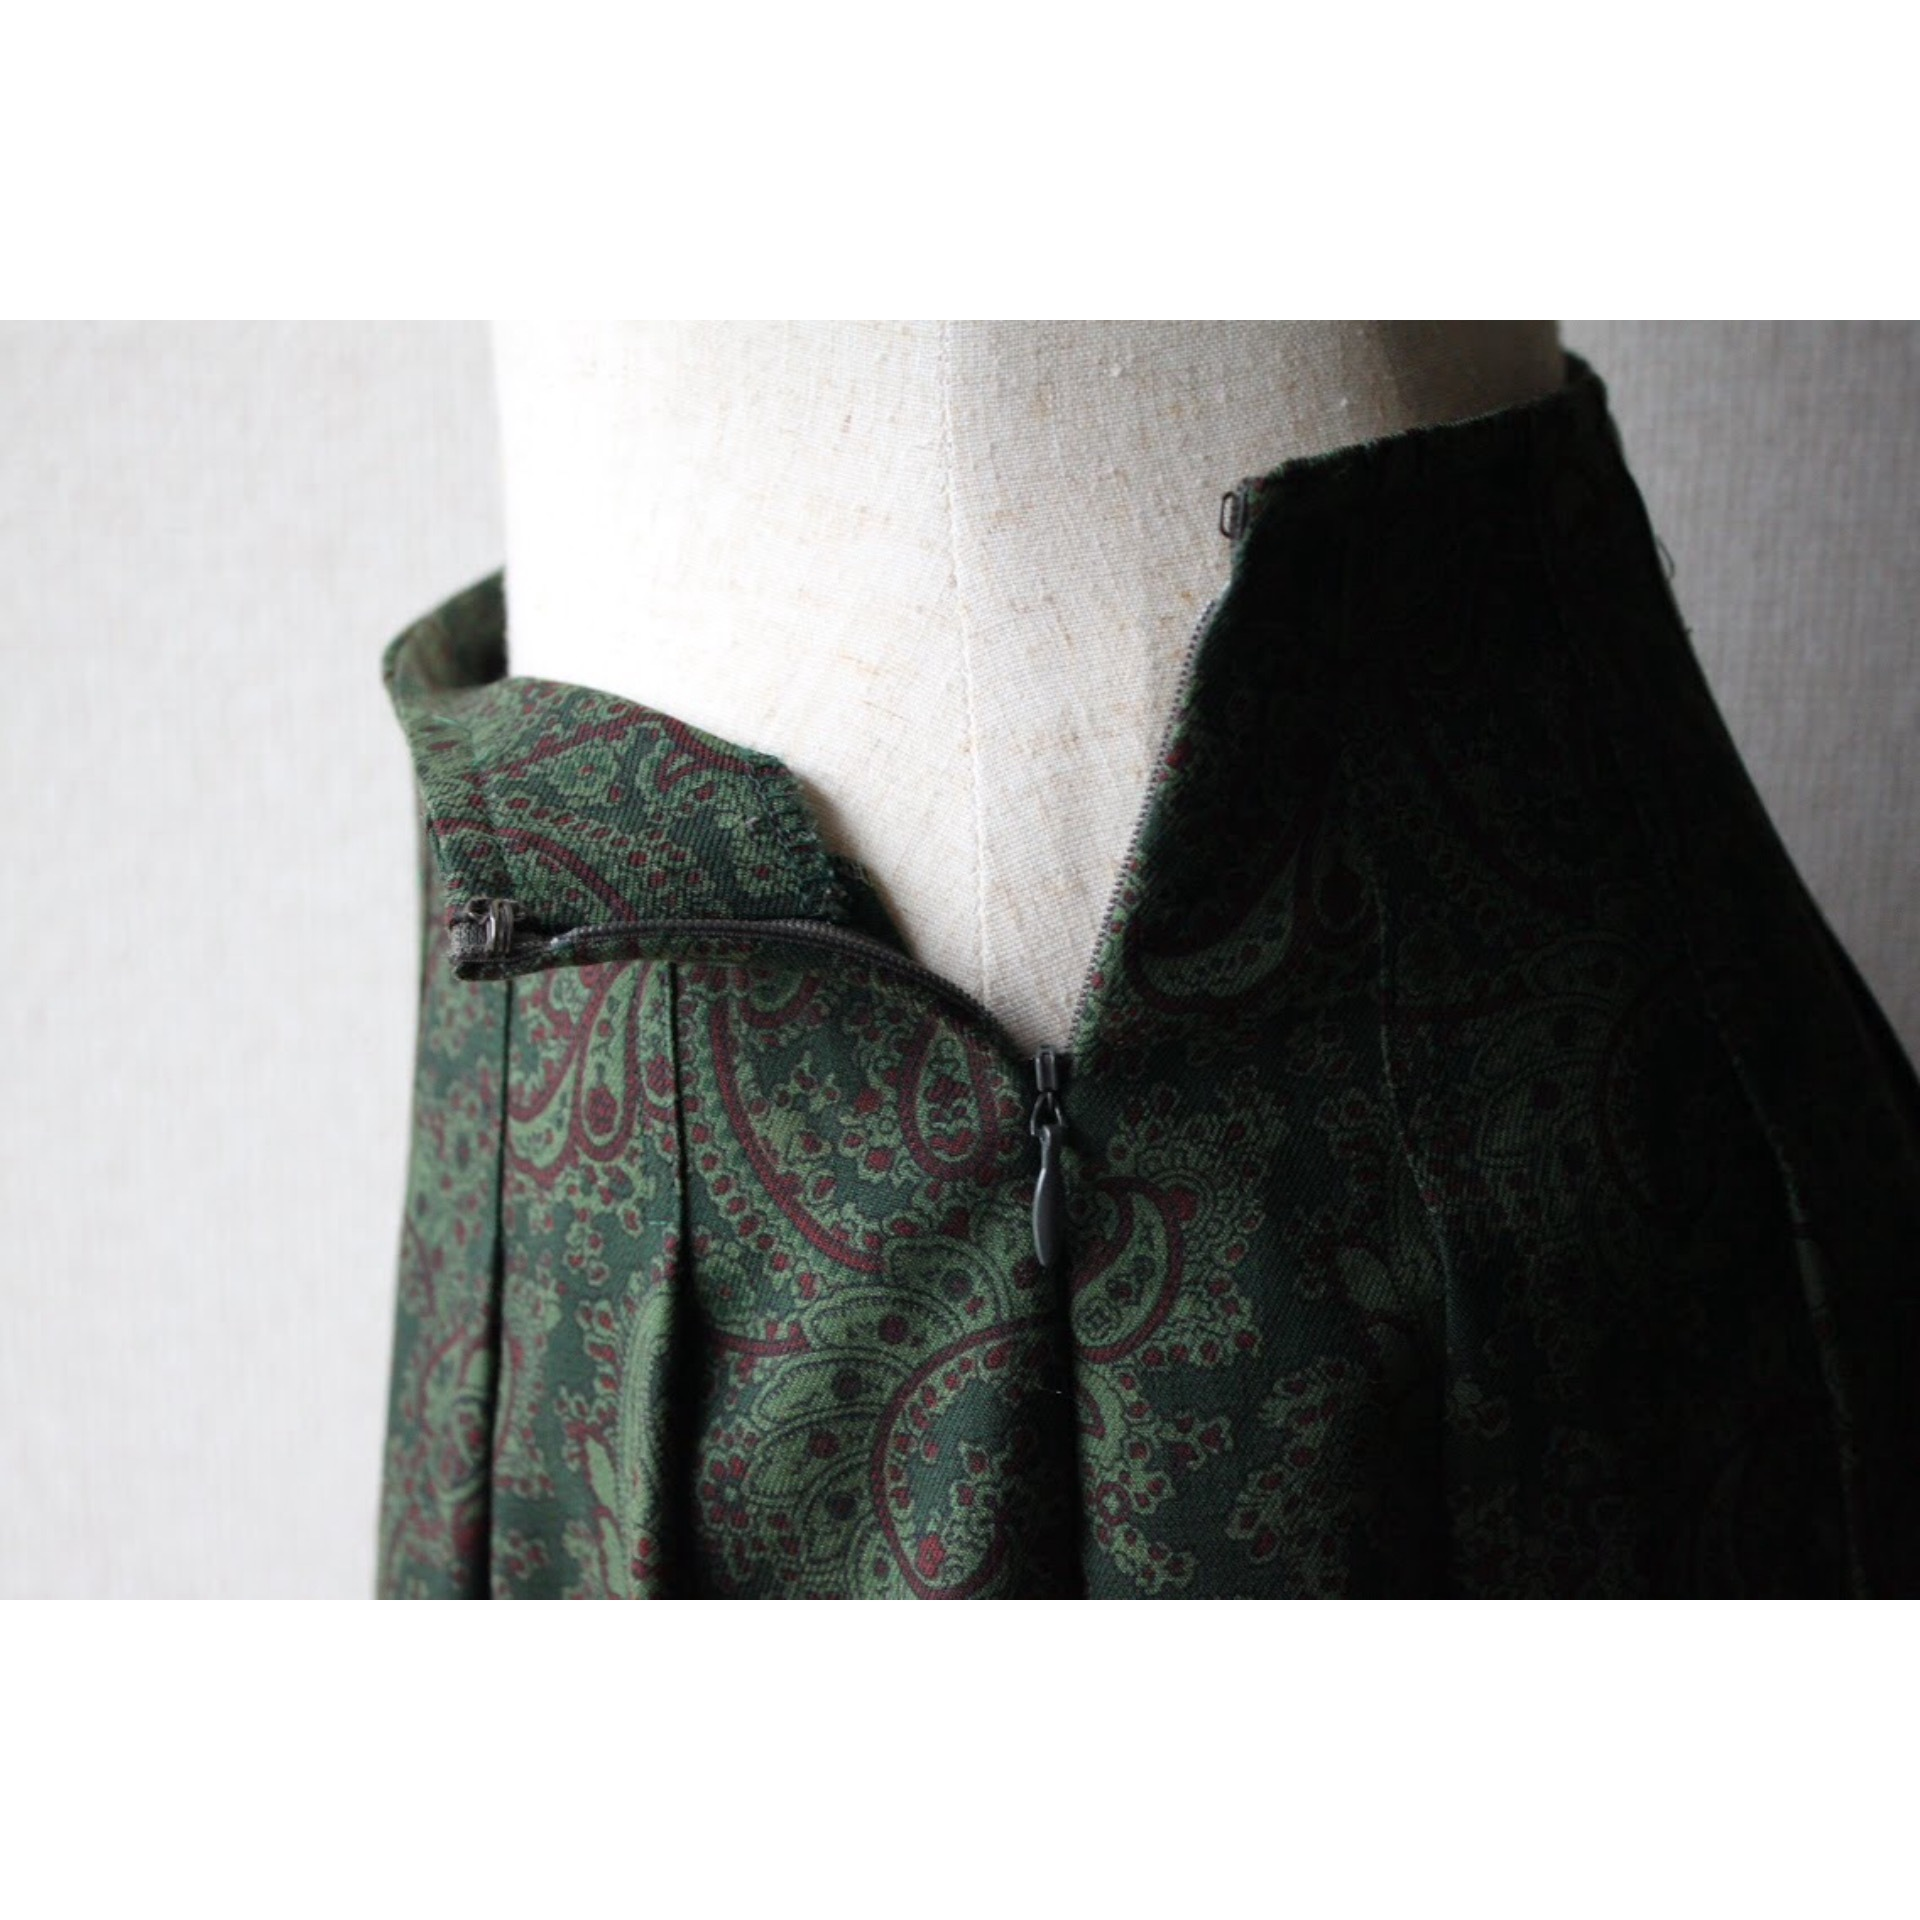 Vintage flair skirt by Gucci